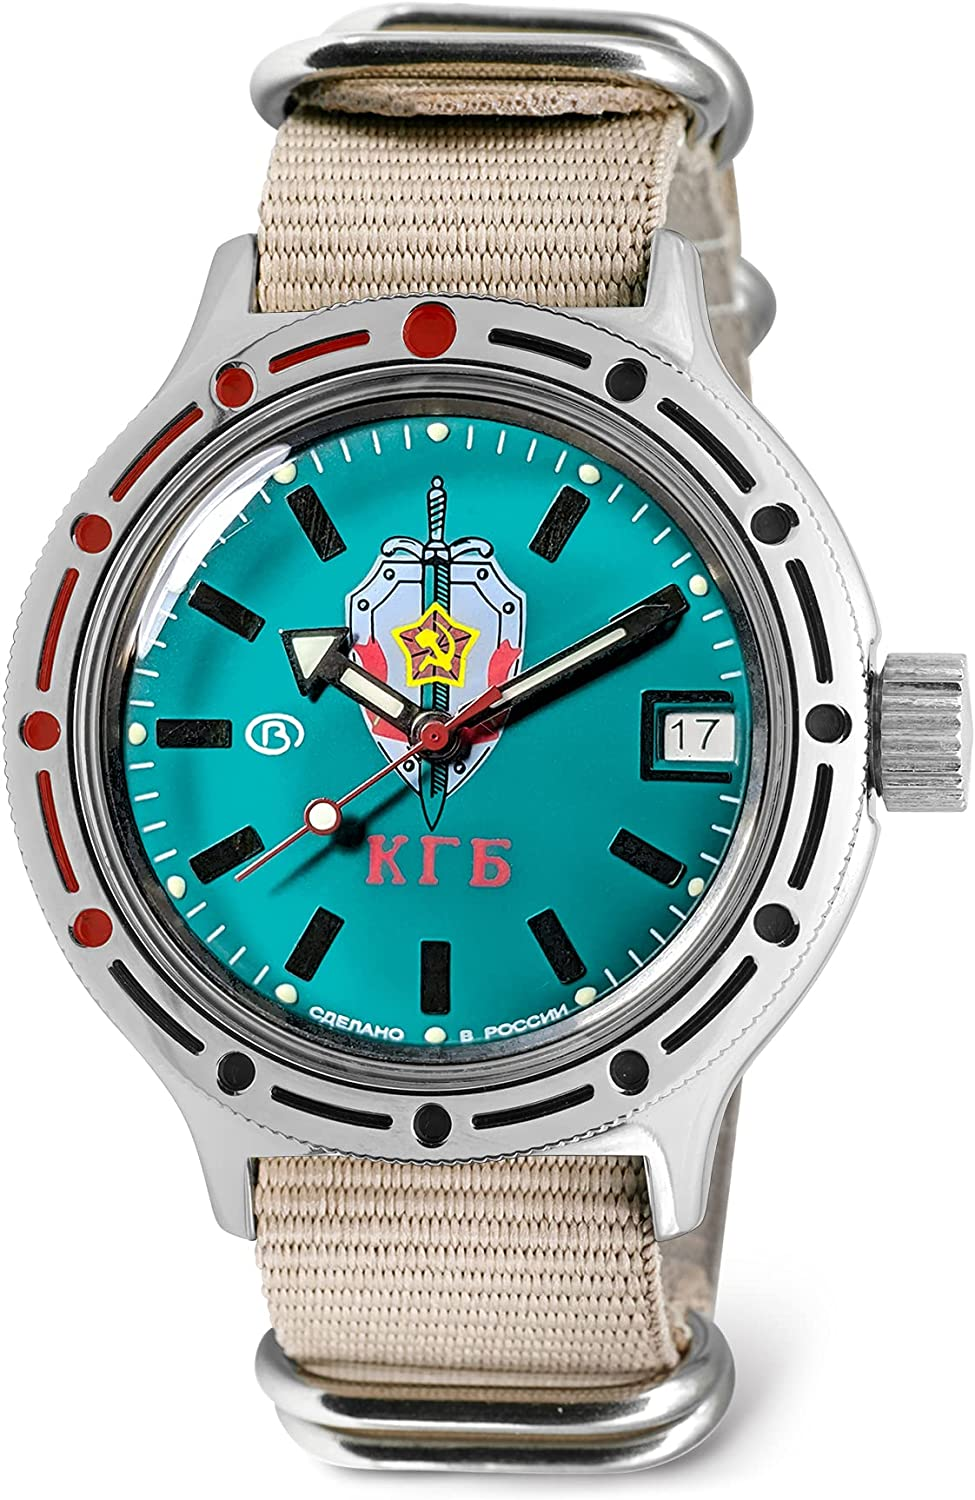 VOSTOK Men's KGB Ranking Max 68% OFF TOP11 USSR State Amphibian Committee Security Autom